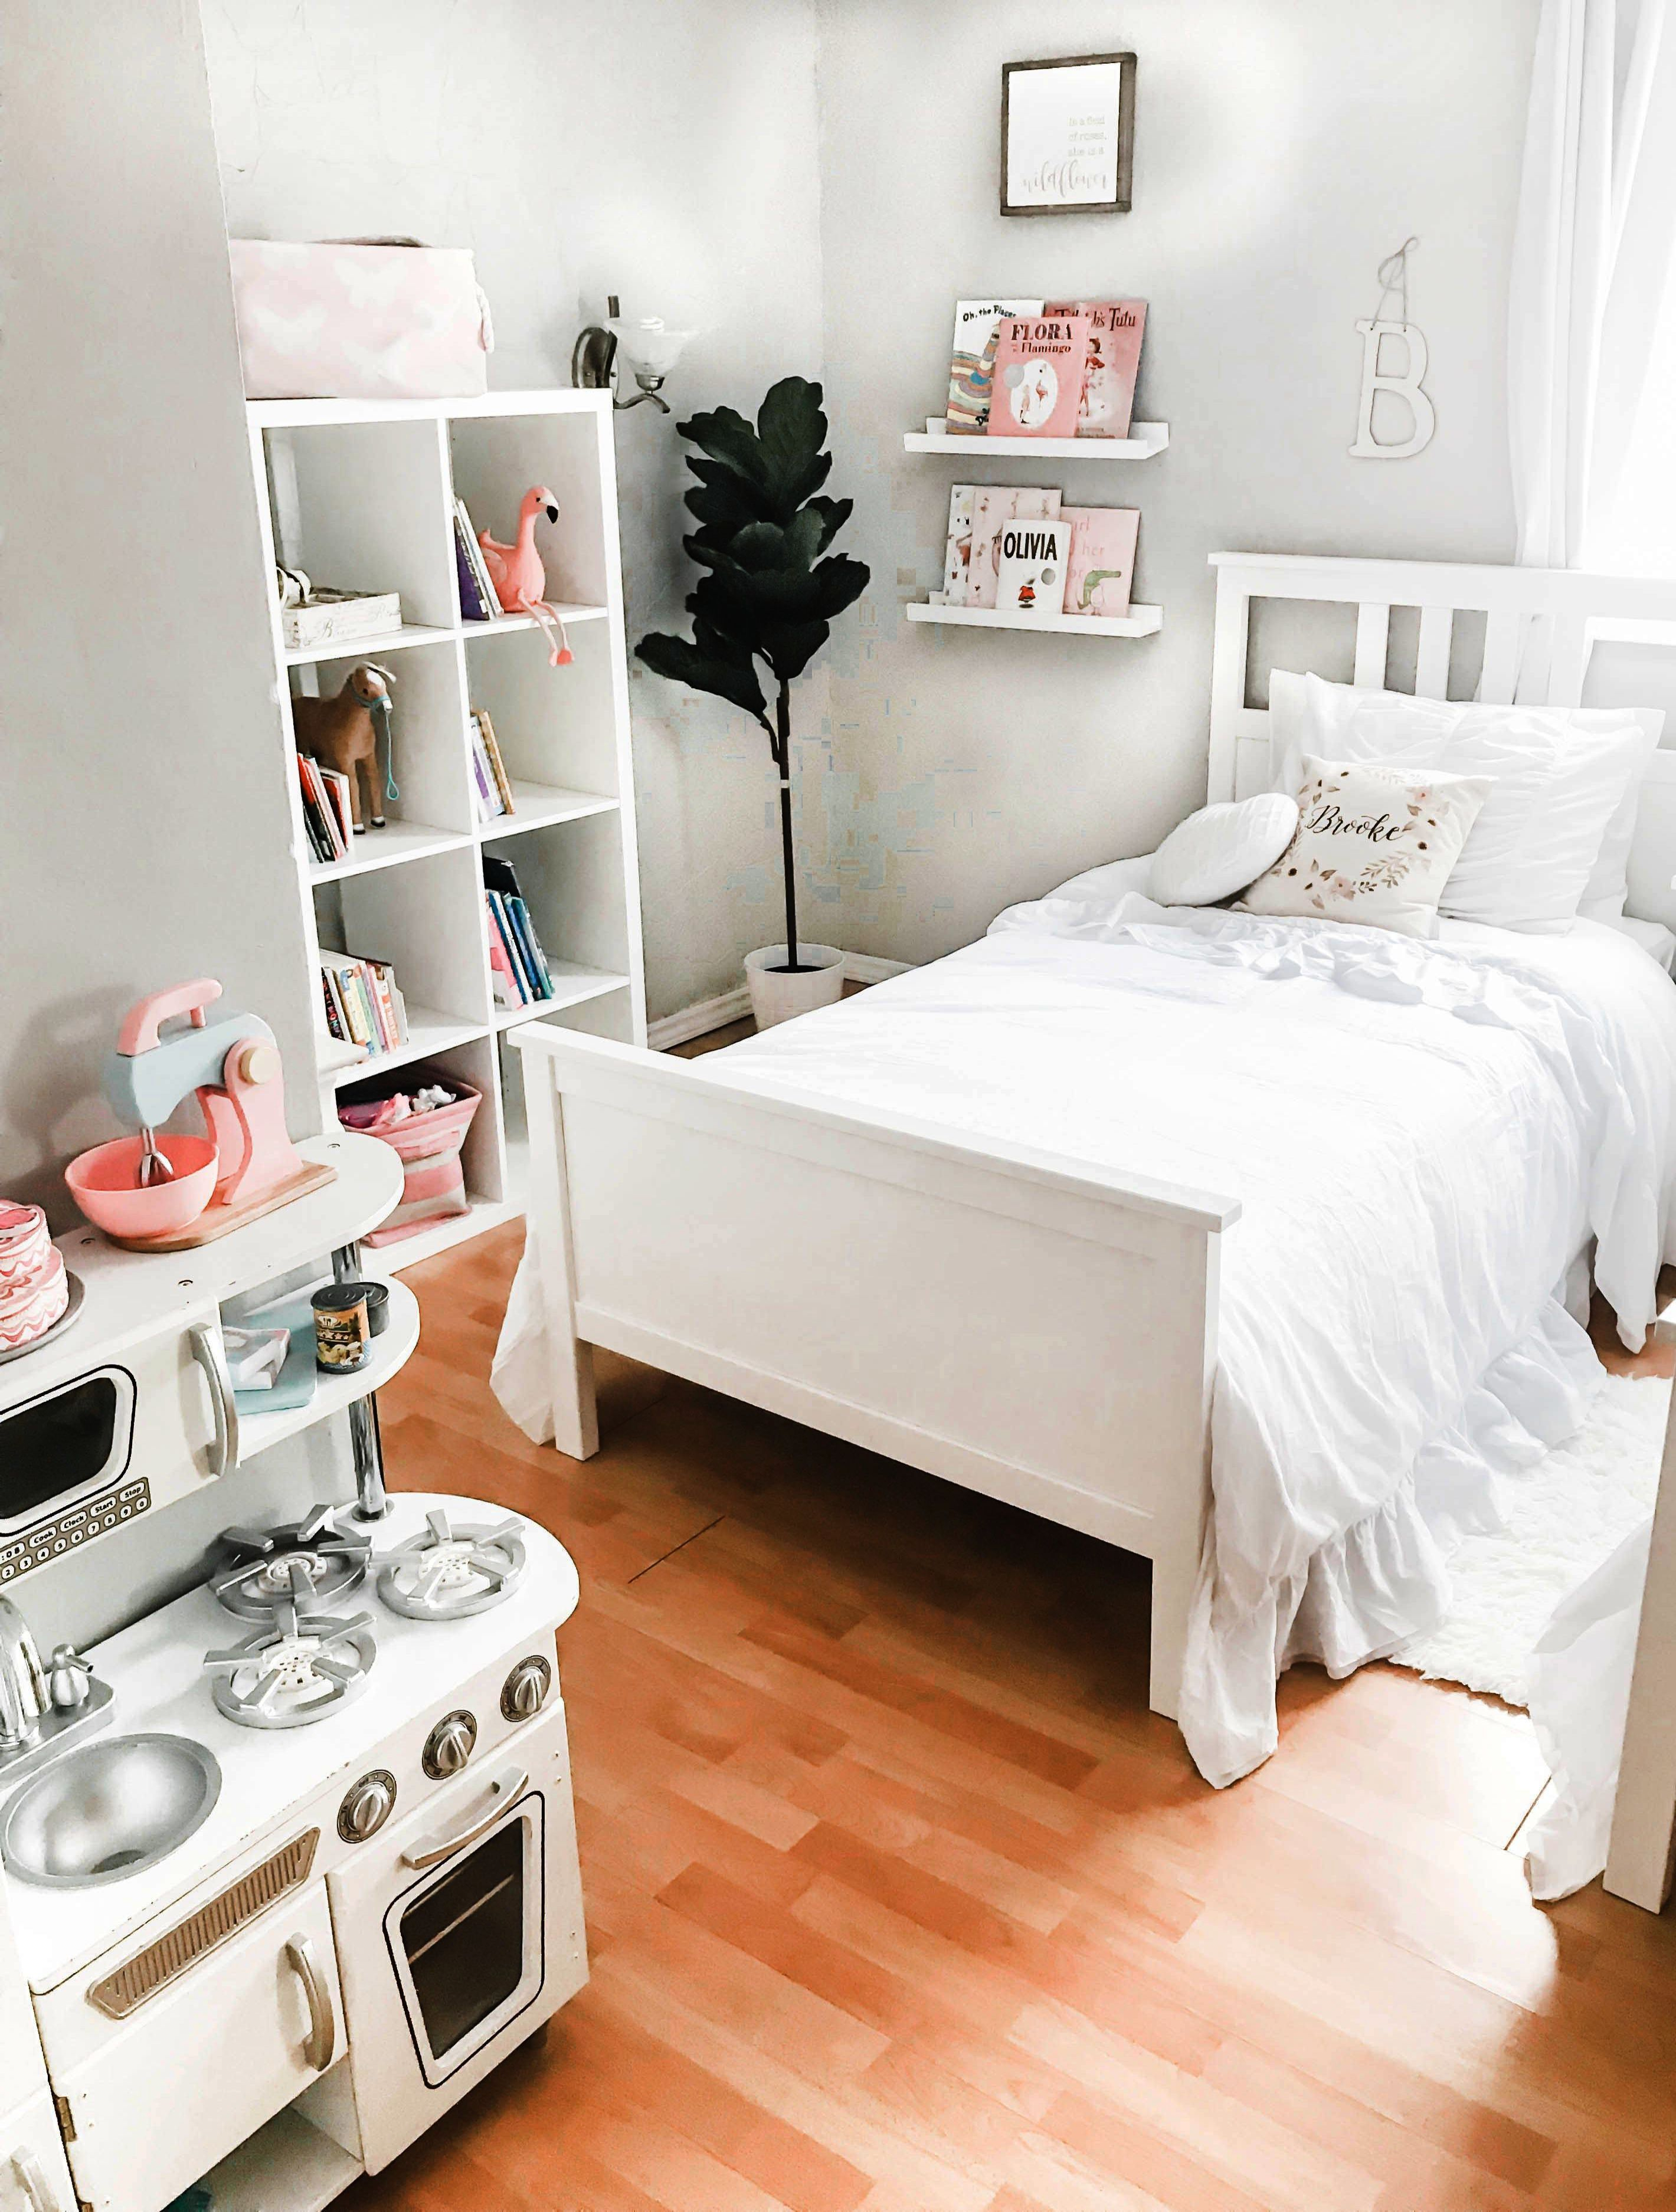 Furniture Stores Greenville Sc It Is Ashley Furniture Bedroom Set Marble Top Furniture For One Bed Shared Girls Bedroom Shabby Chic Bedrooms Toddler Girl Room